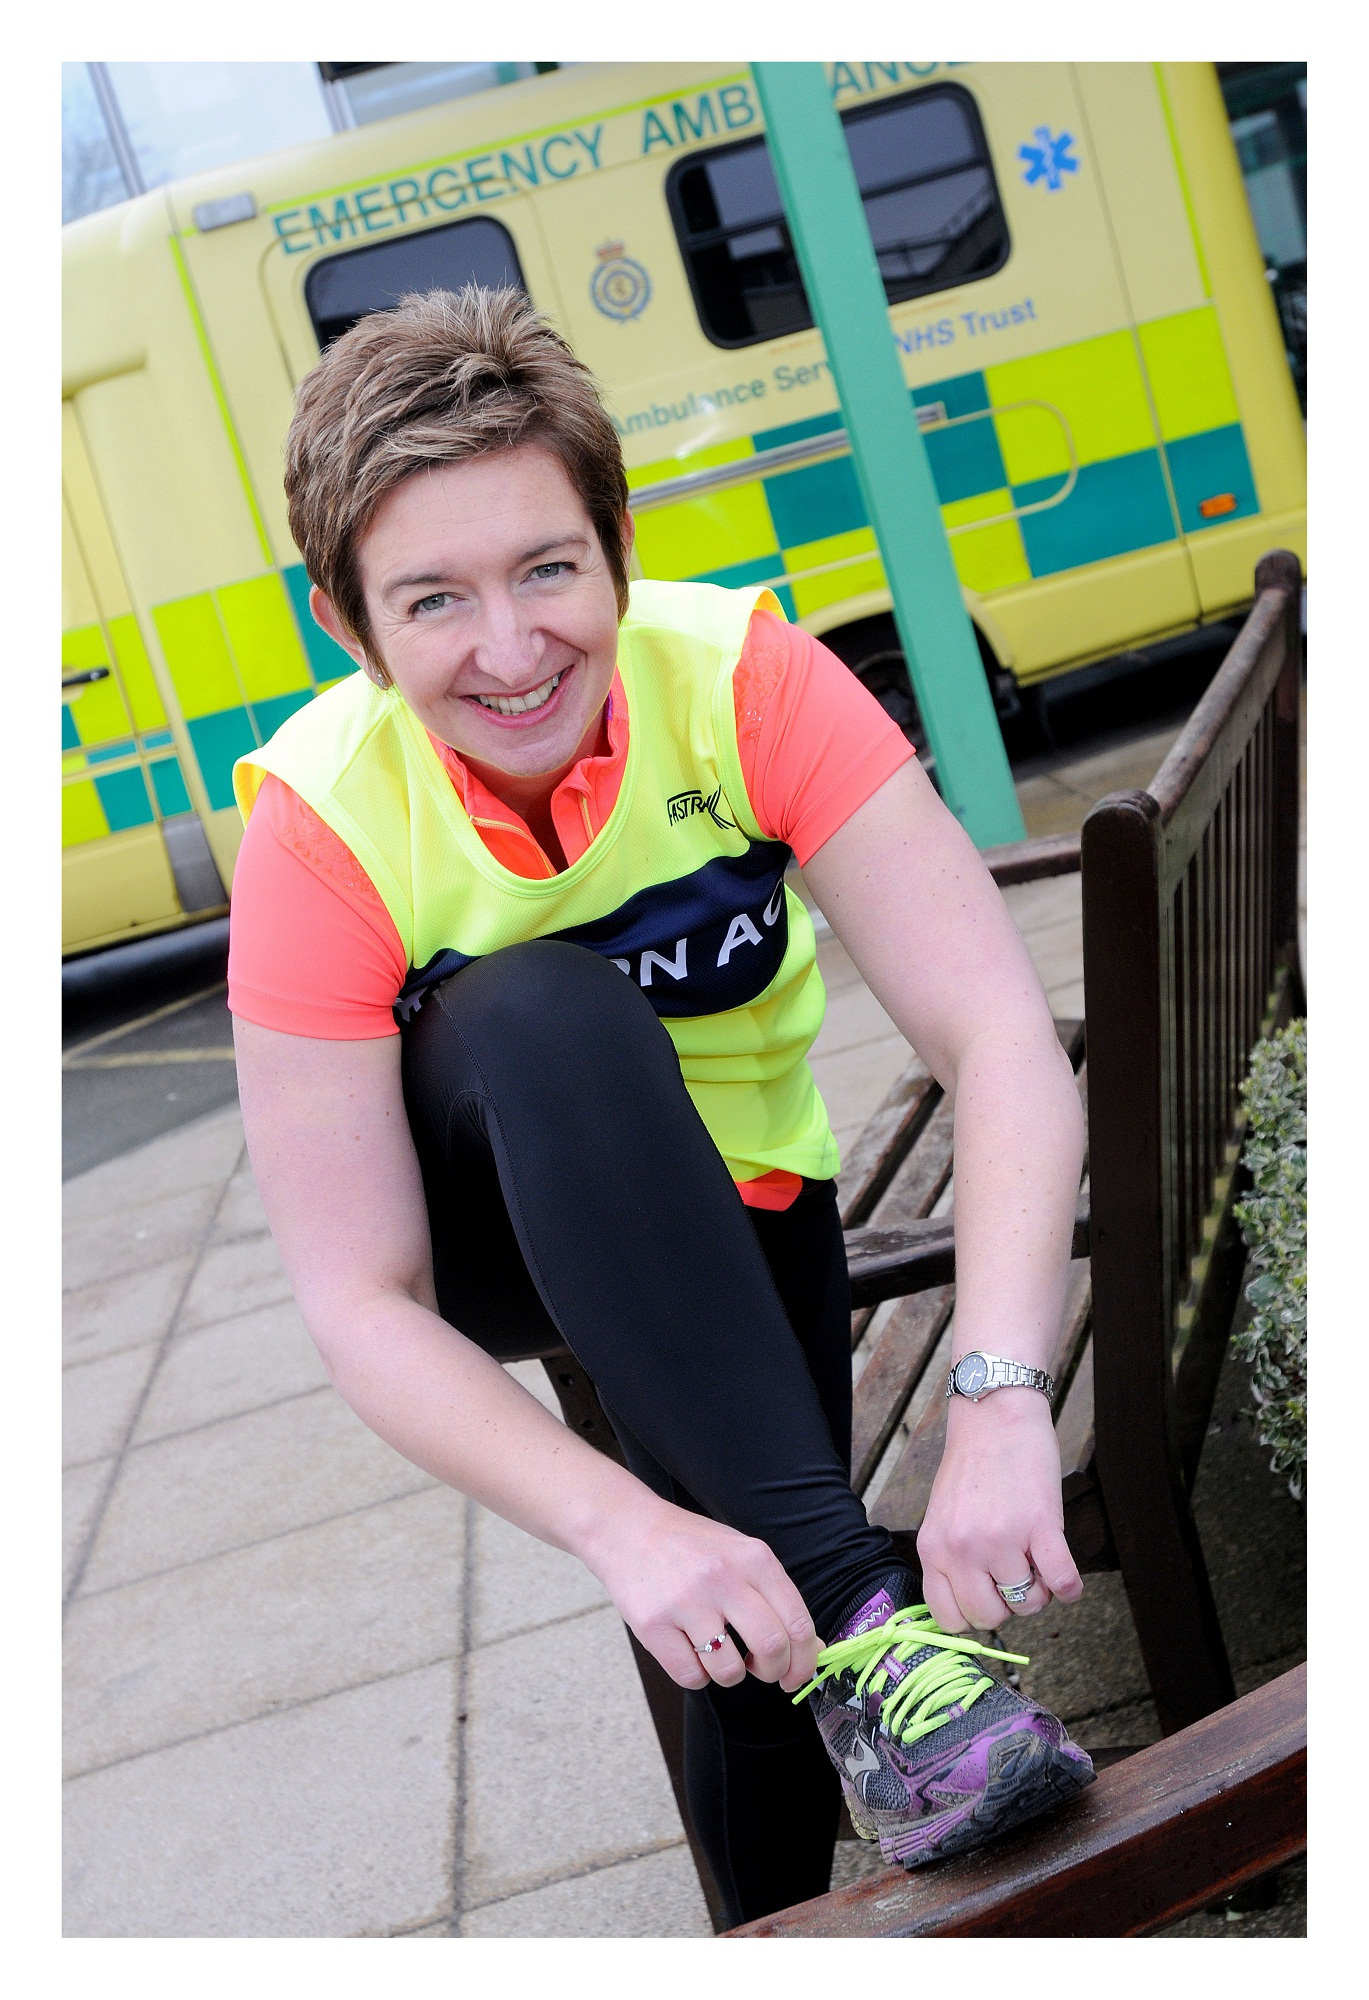 Rebecca Malin, who ran the 2014 London Marathon to raise money for the appeal